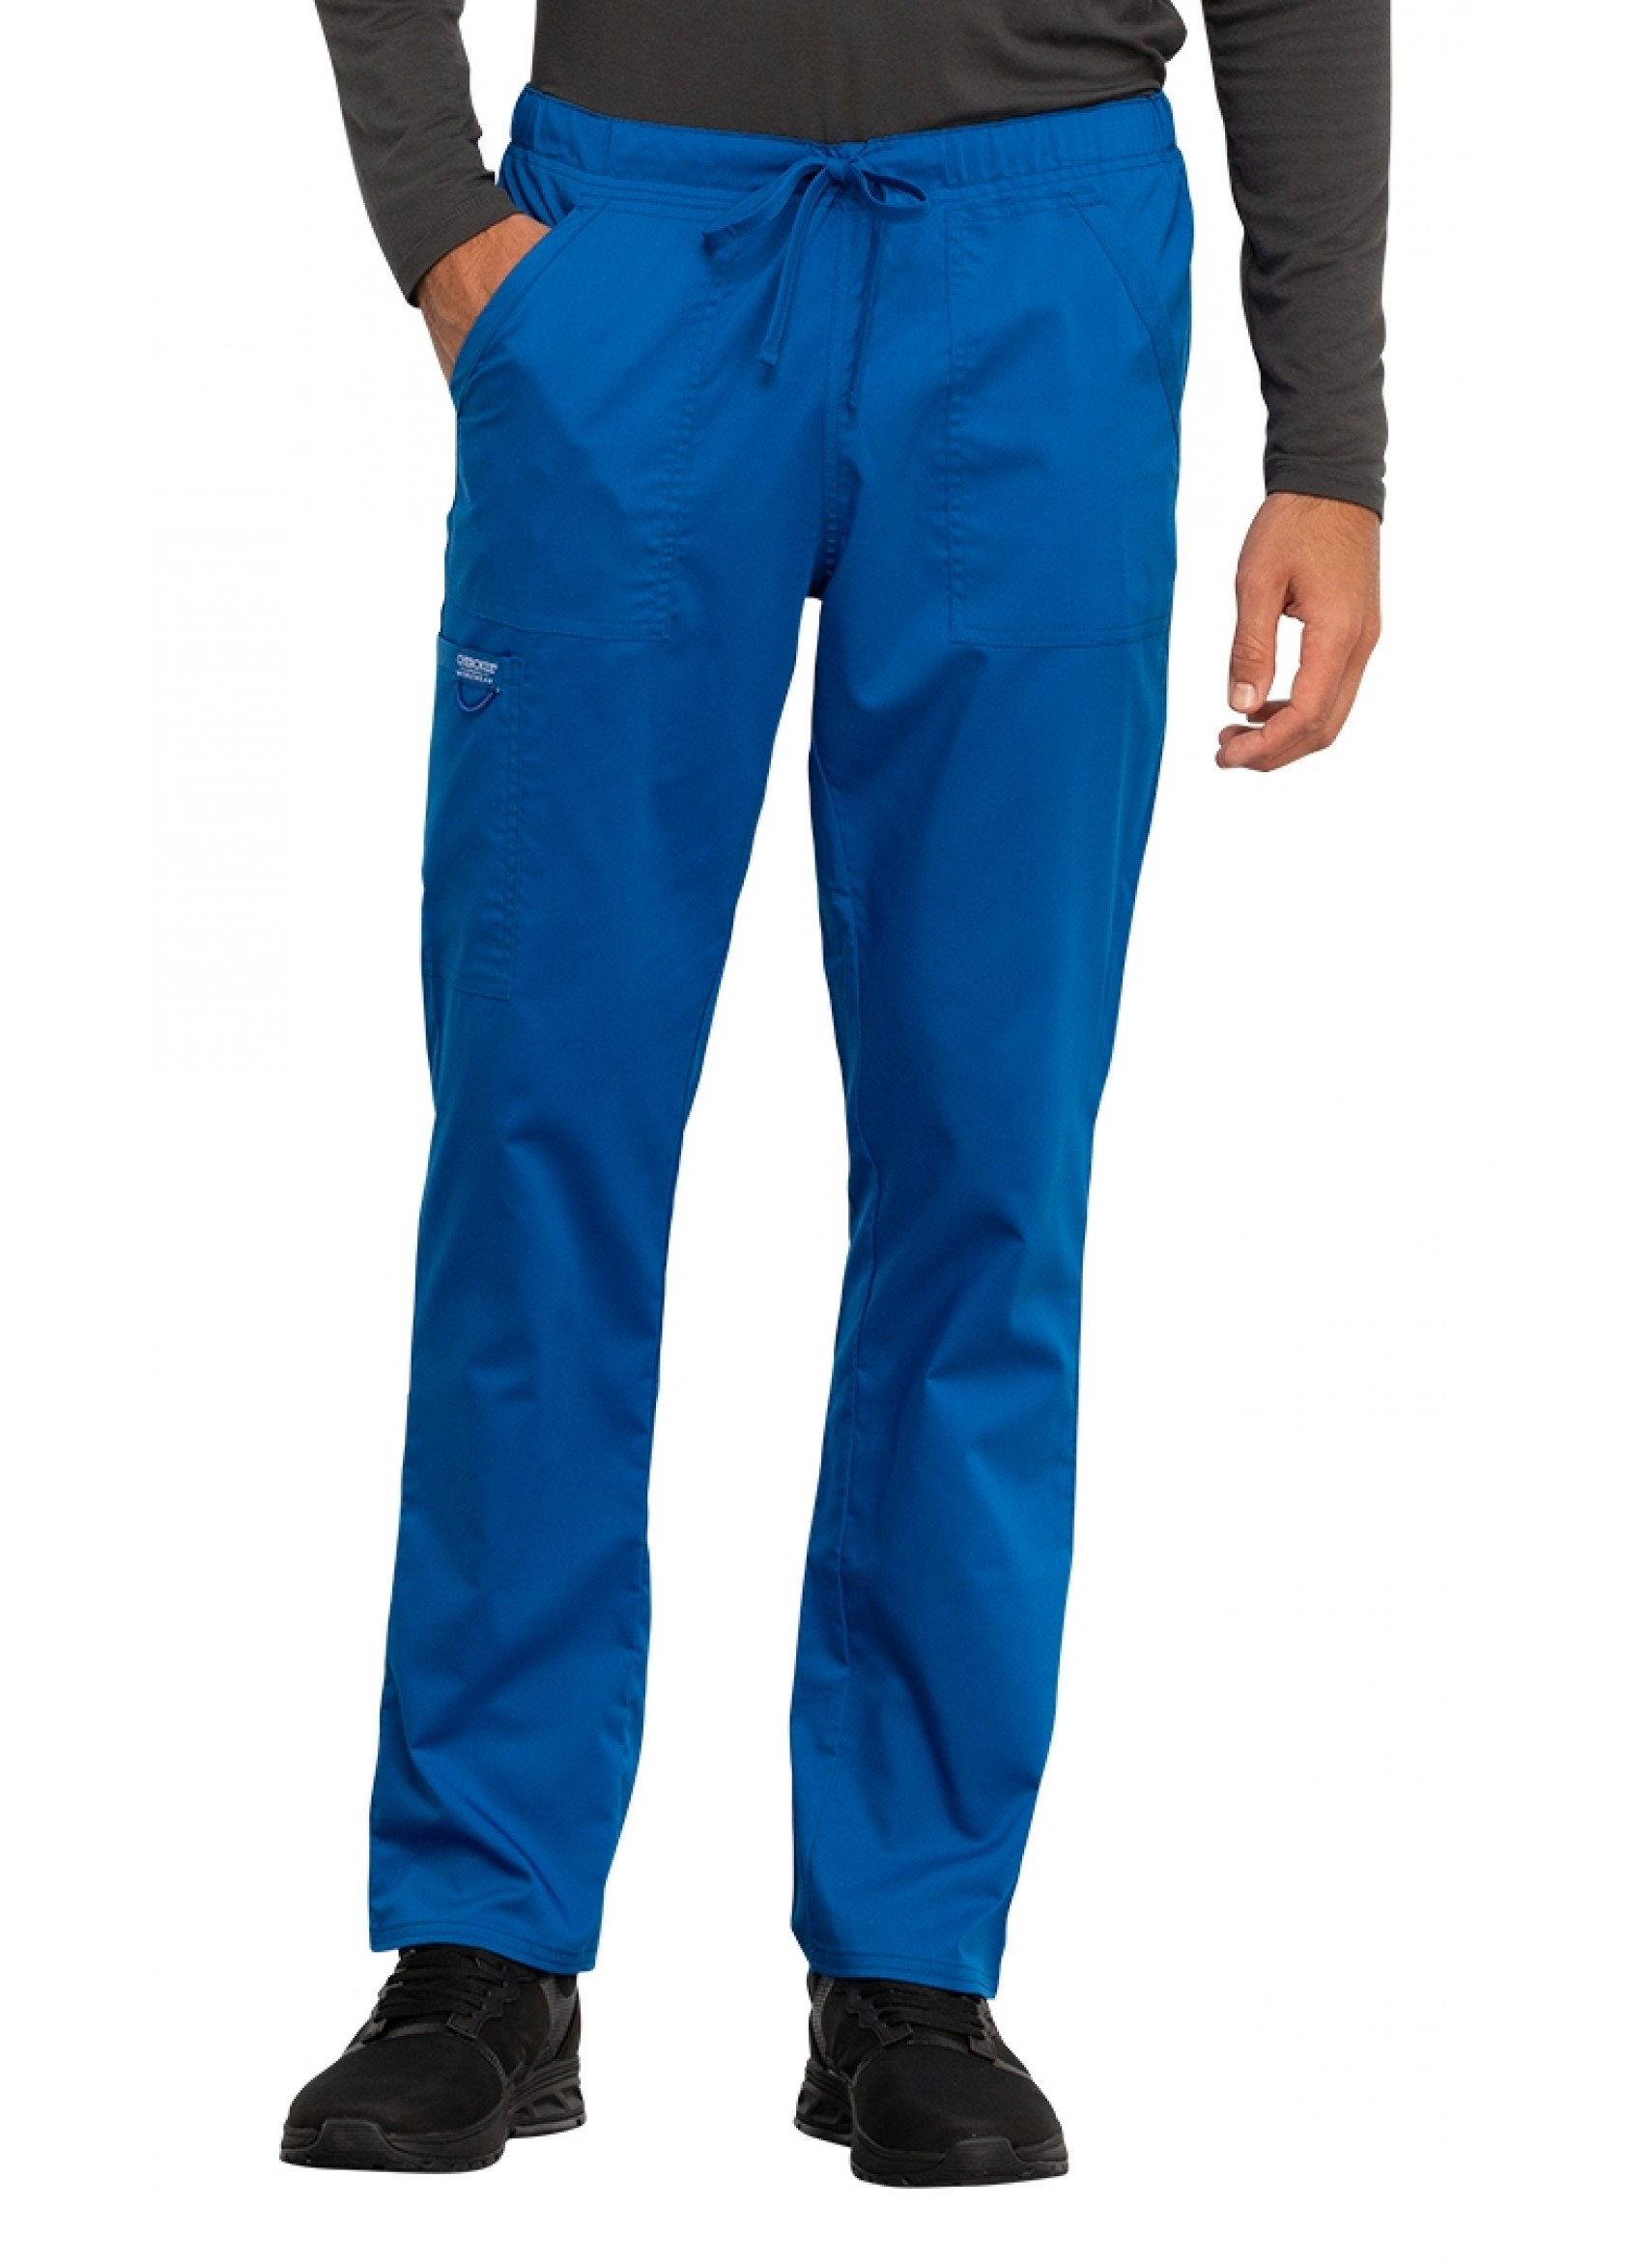 f2f6f528c72 Happy Father's Day! 15% off sitewide with code DAD at checkout! Cherokee  Workwear Revolution Unisex Tapered Leg Scrub Pants ...